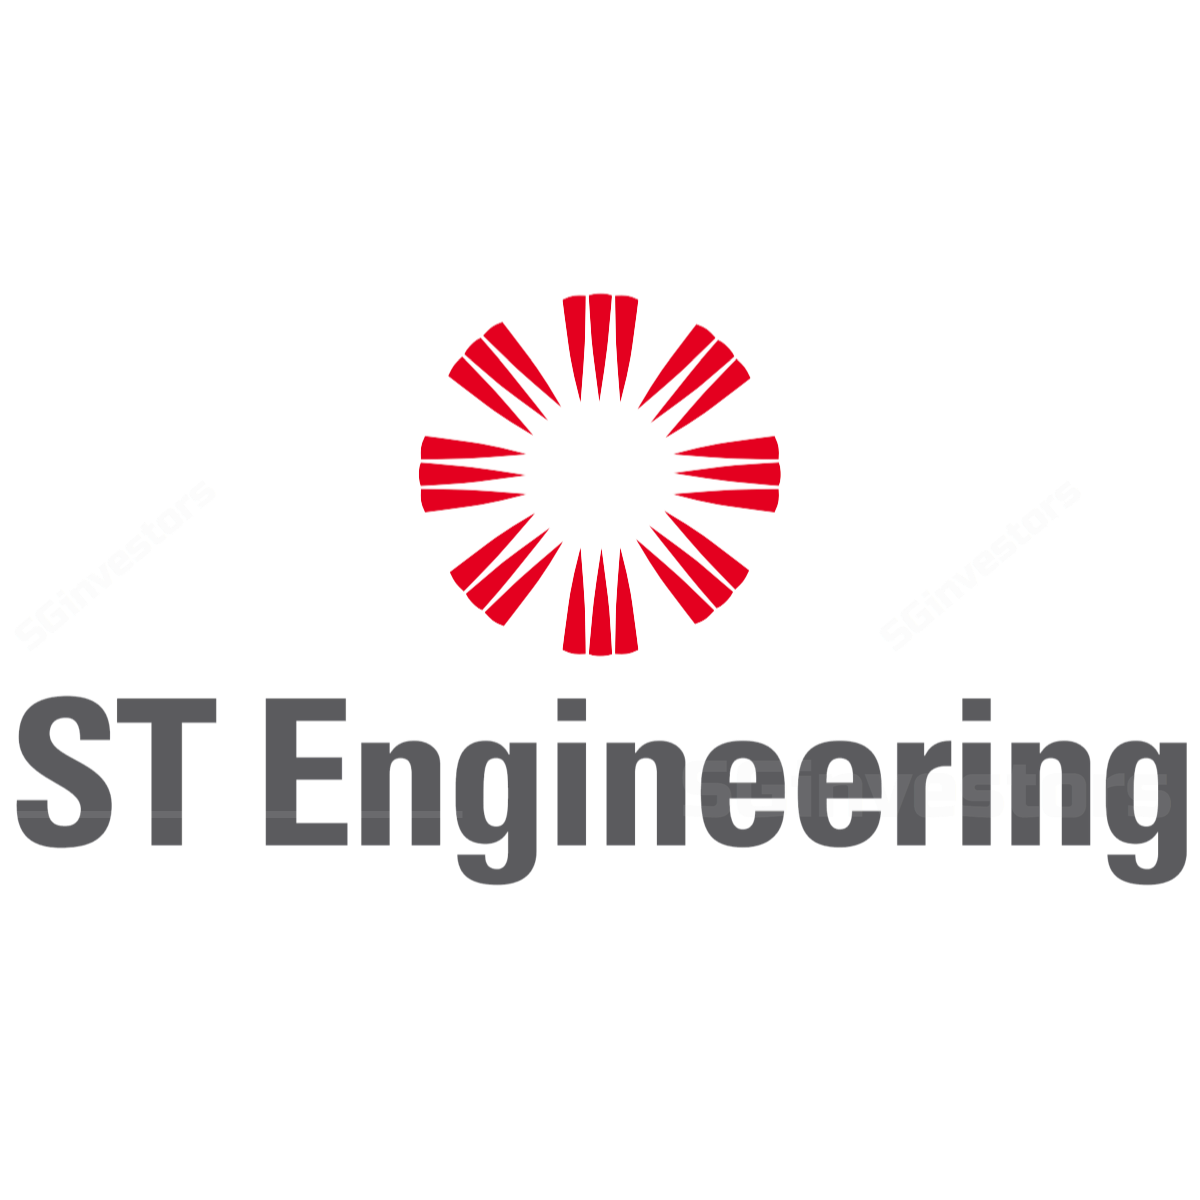 ST Engineering - CIMB Research 2018-01-17: S$2.8bn Aerospace Contracts In 2017